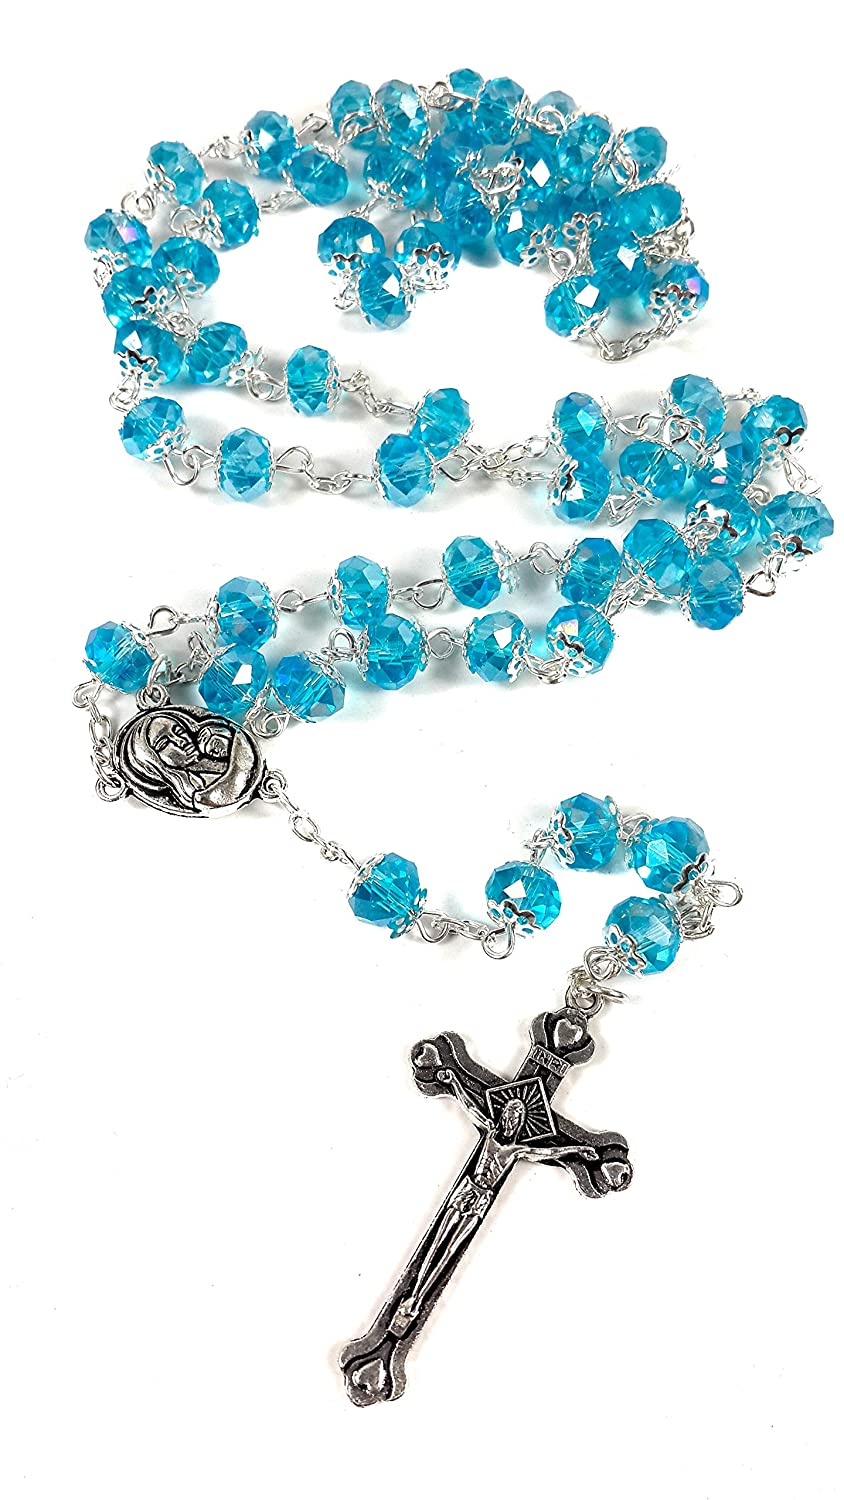 Turquoise Crystal Beads Rosary Catholic Necklace Holy Soil Medal with Crucifix by Nazareth Market Store Nazareth Store